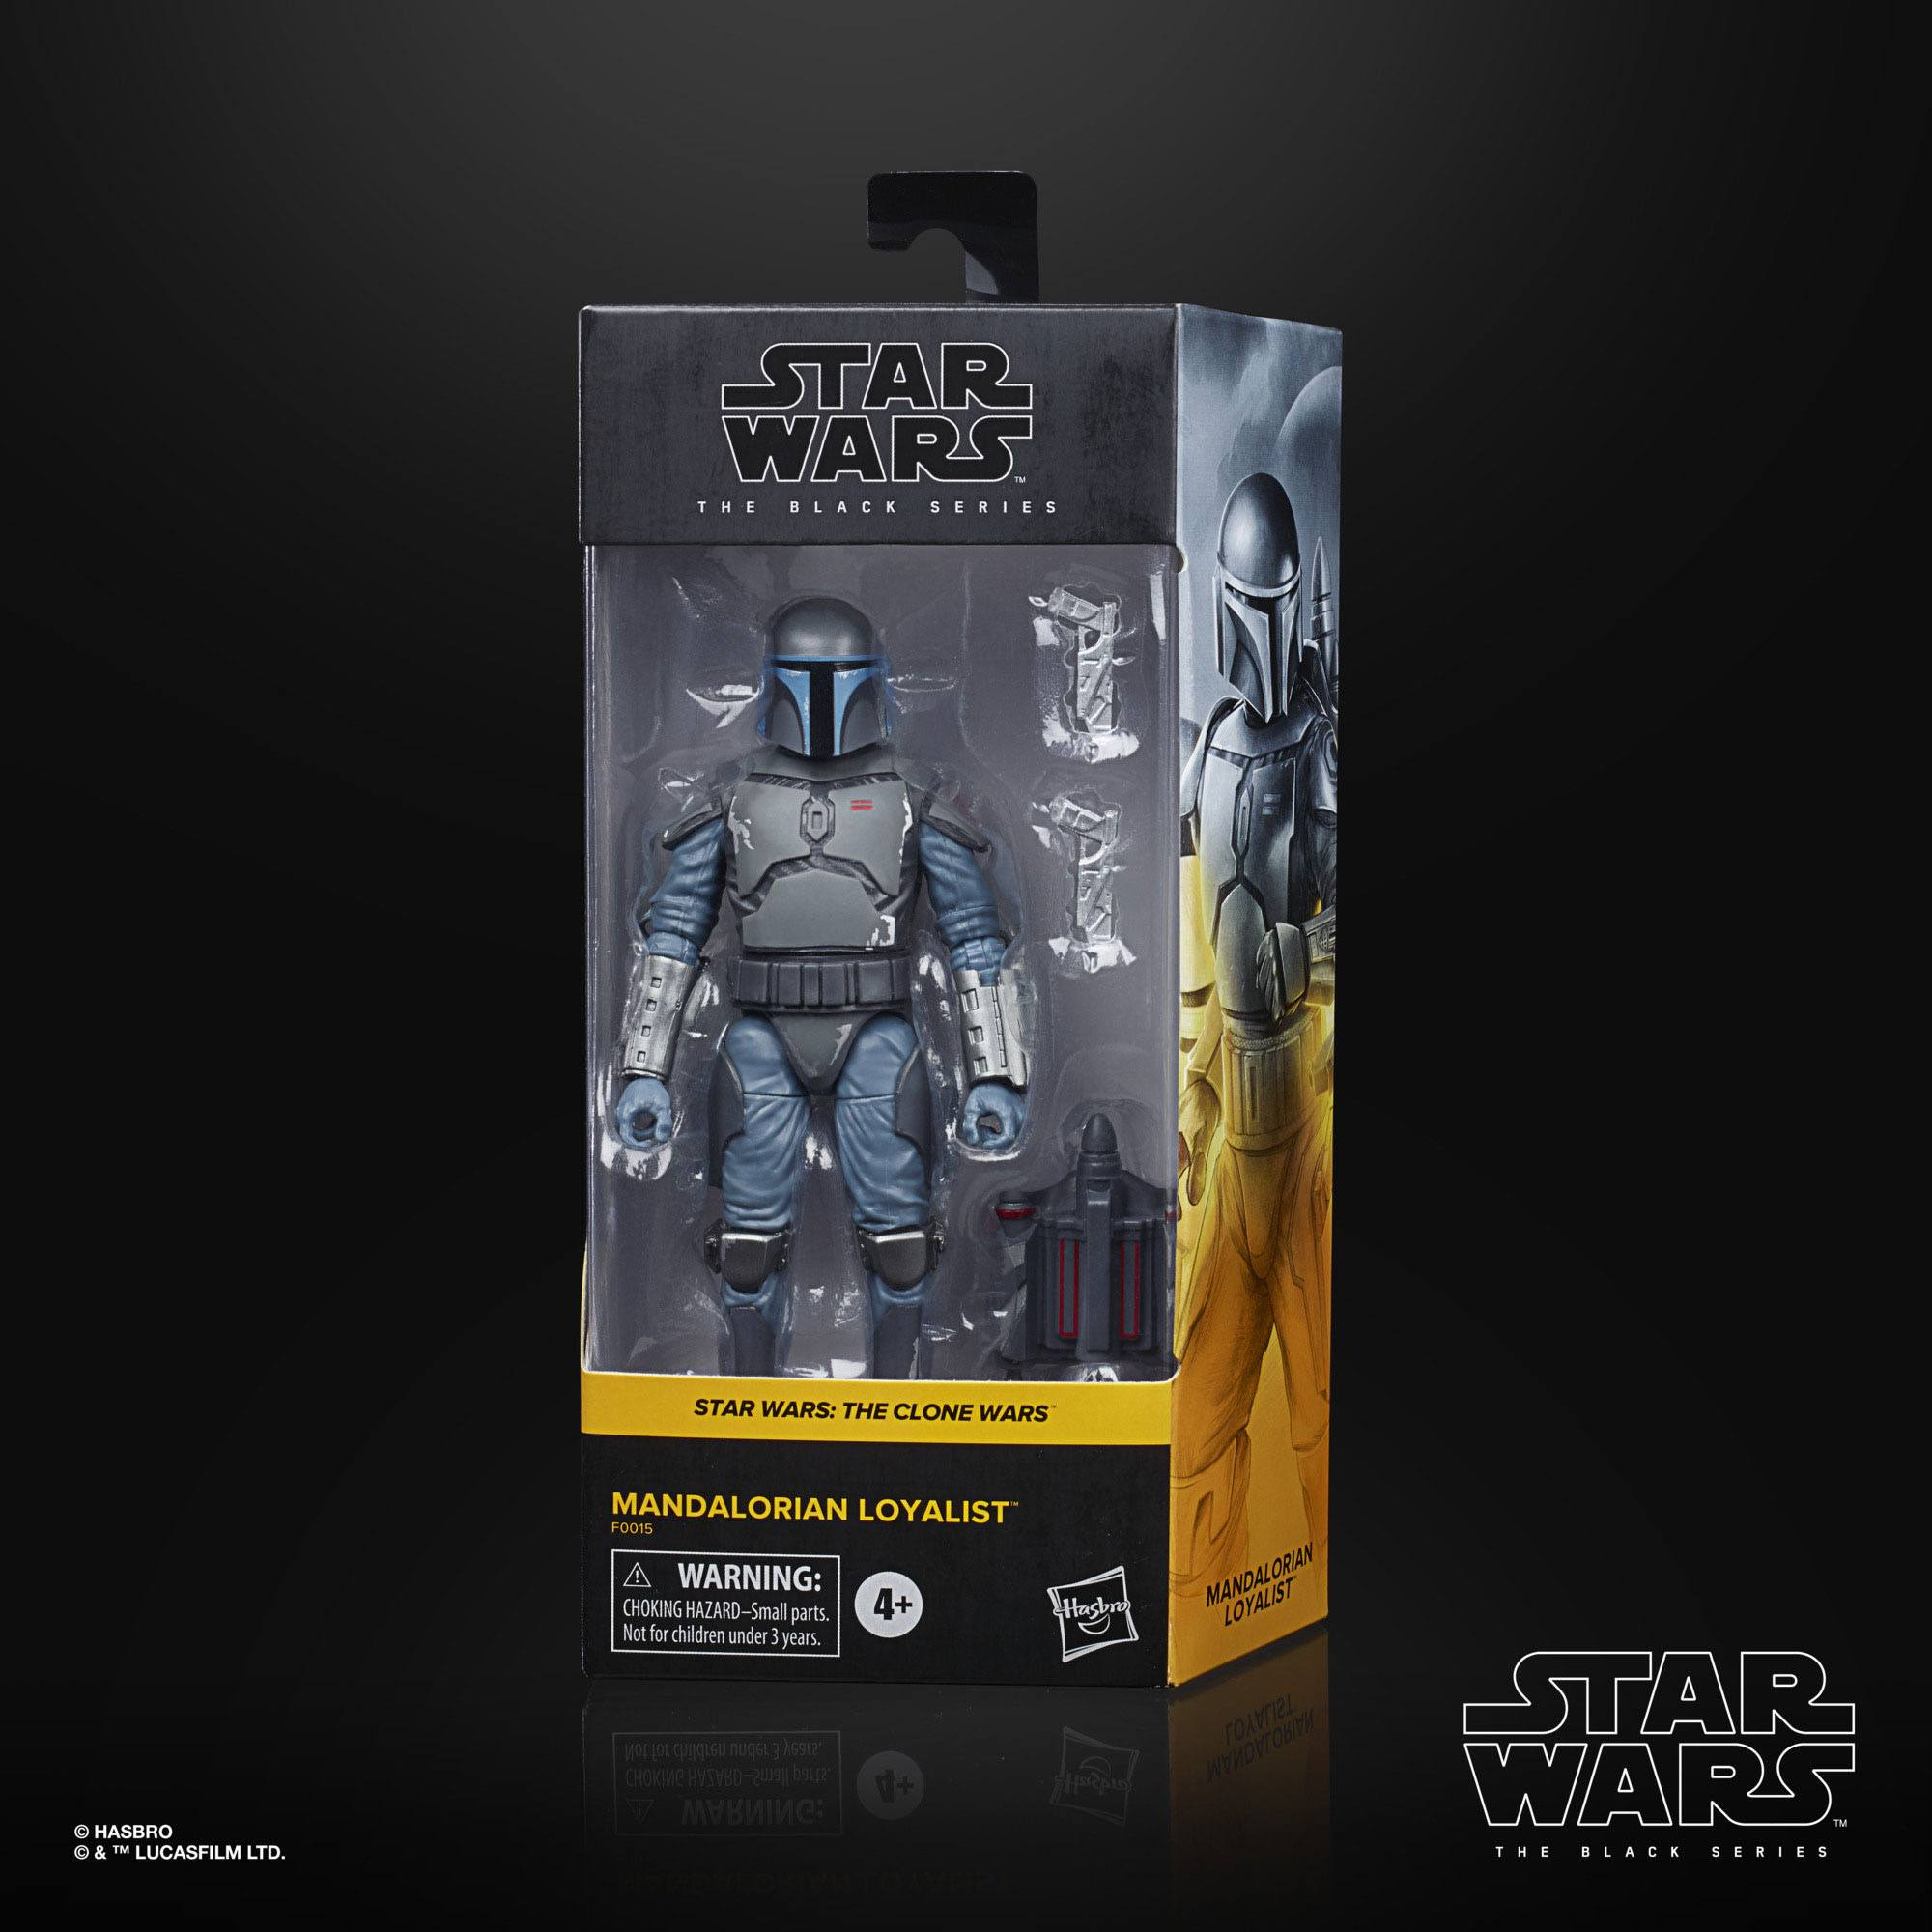 Star Wars The Clone Wars Black Series Actionfigur 2020 Mandolorian Loyalist 15 cm F0015 5010993750252